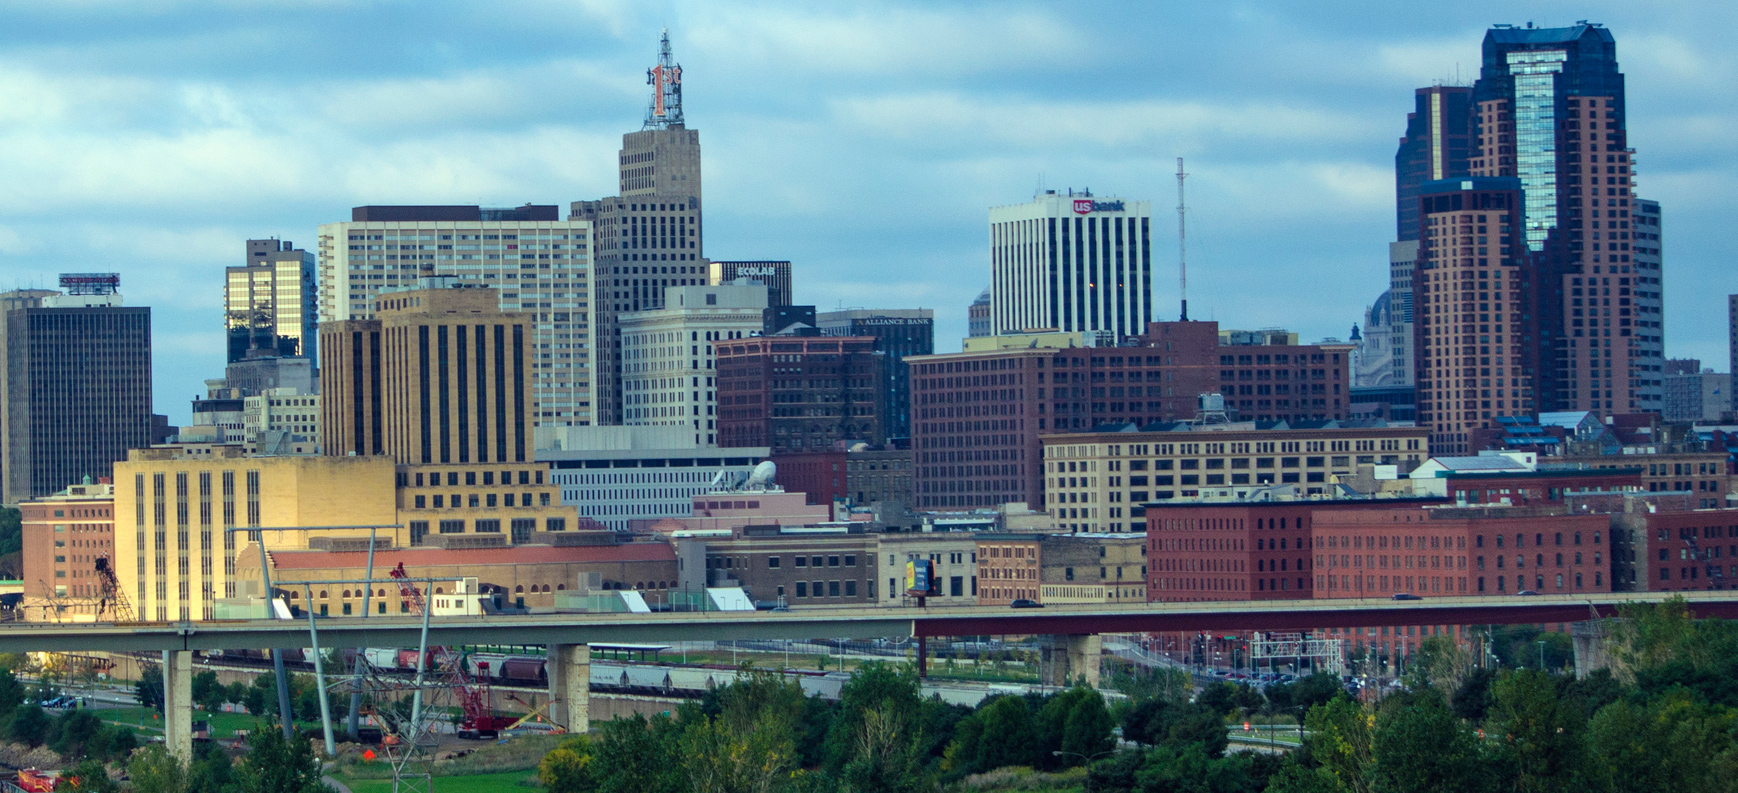 Cityscape of Saint Paul